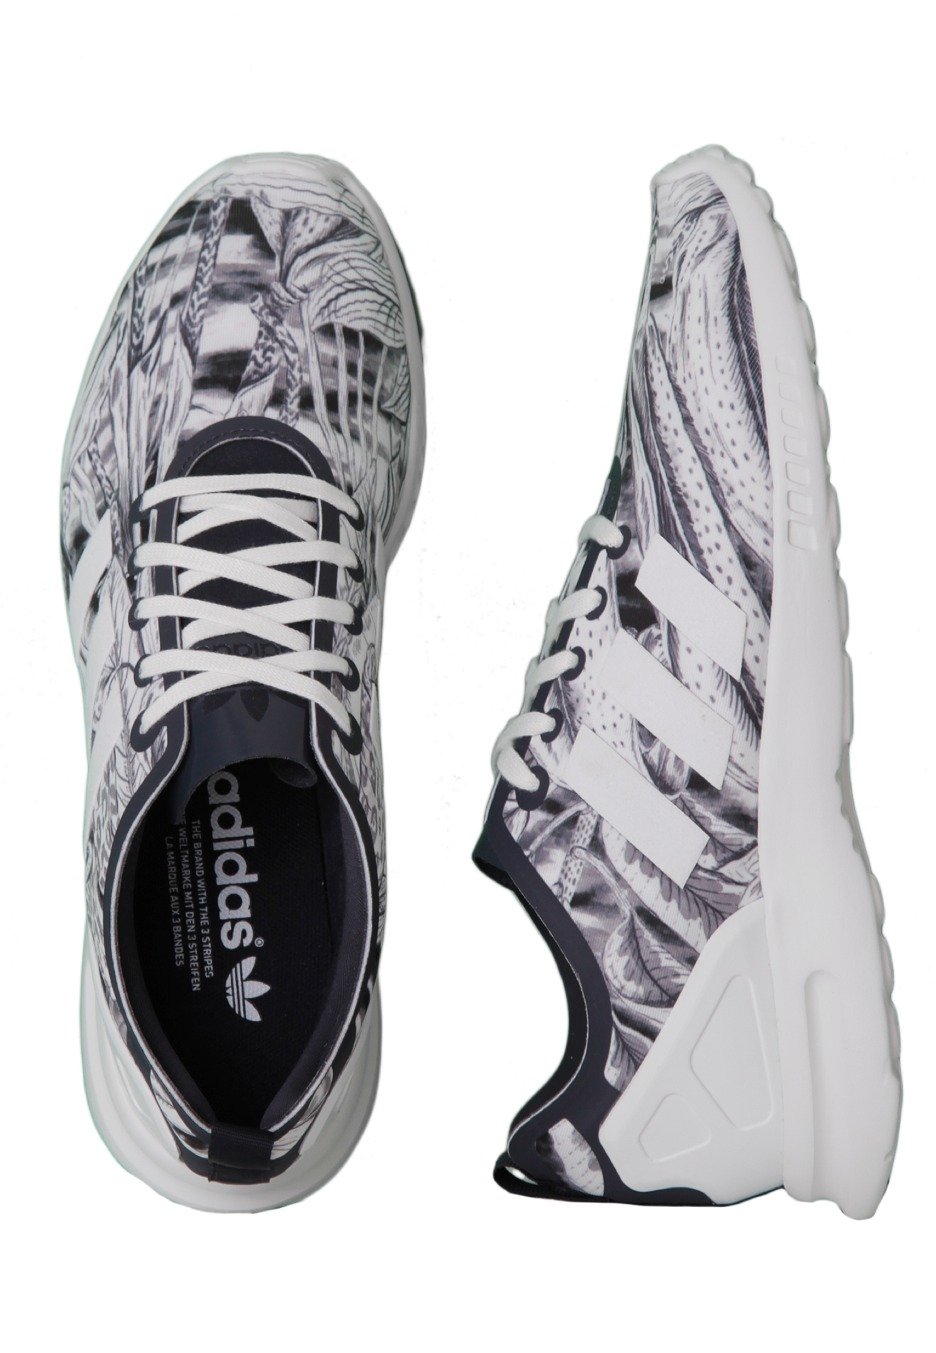 cheap for discount 5a1d4 75827 Adidas - ZX Flux Smooth W Legend InkLegend InkCore White - Girl Shoes -  Impericon.com UK